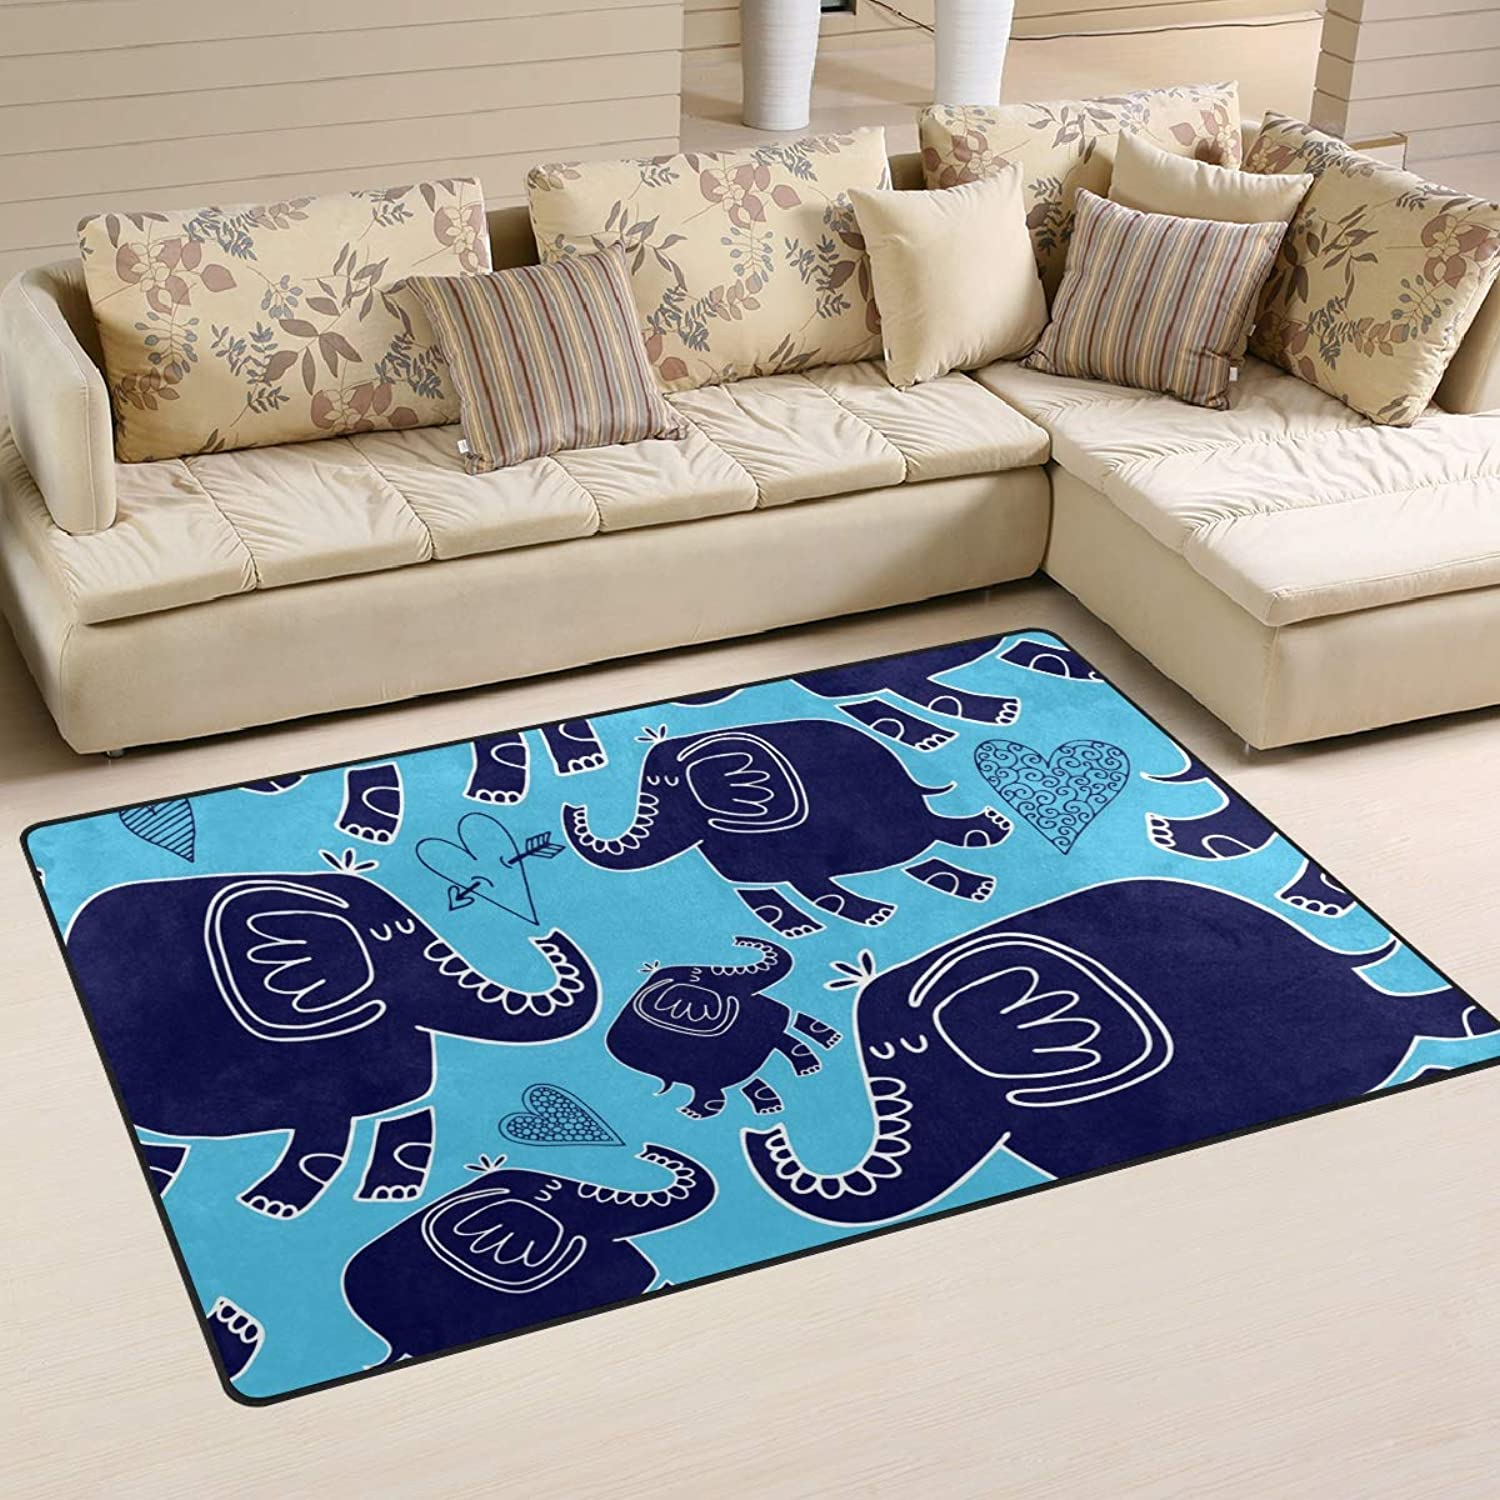 FANTAZIO Area Rug Accessories Elephants and Hearts Entry doormats for Corners and Edge Anti-Curling Ideal Rug Stopper 31x20in 60x39in